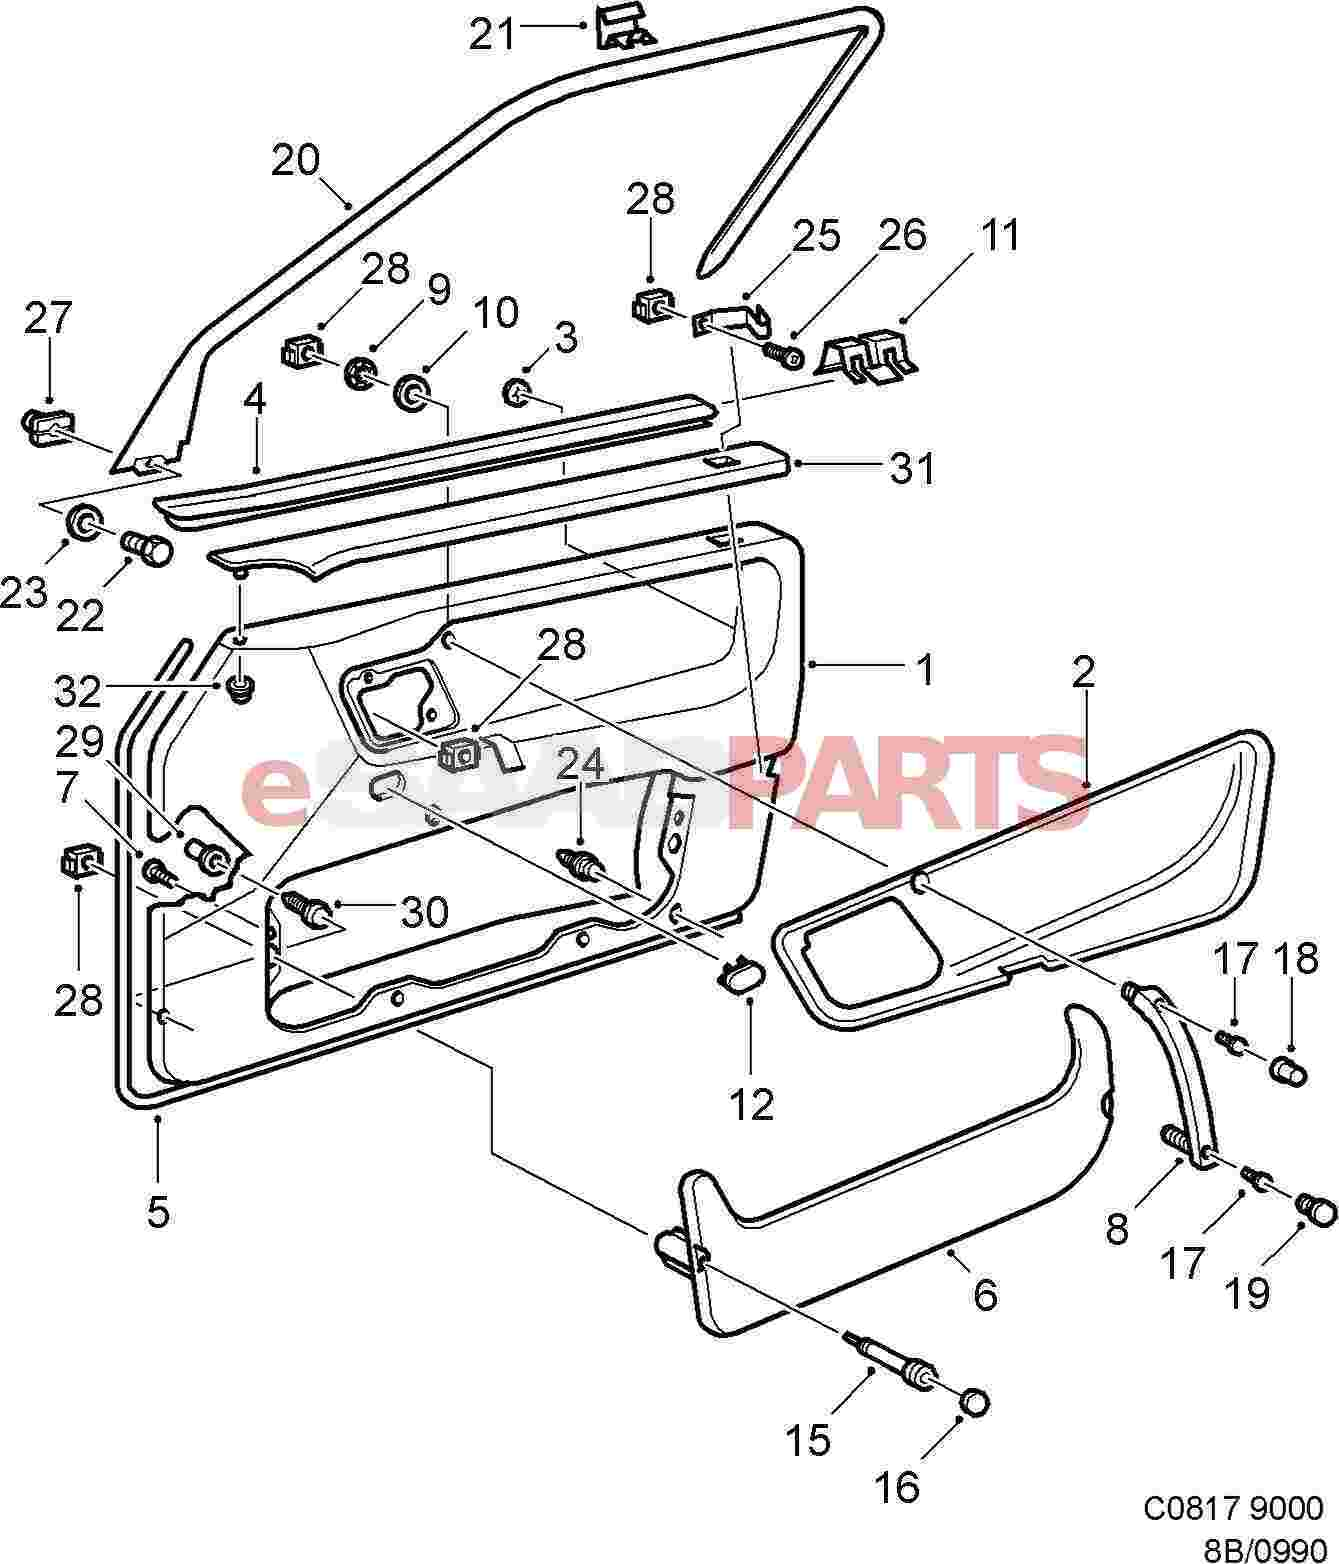 Car Door Parts. Diagram Image # 12 Car Door Parts ESaabParts.com ...